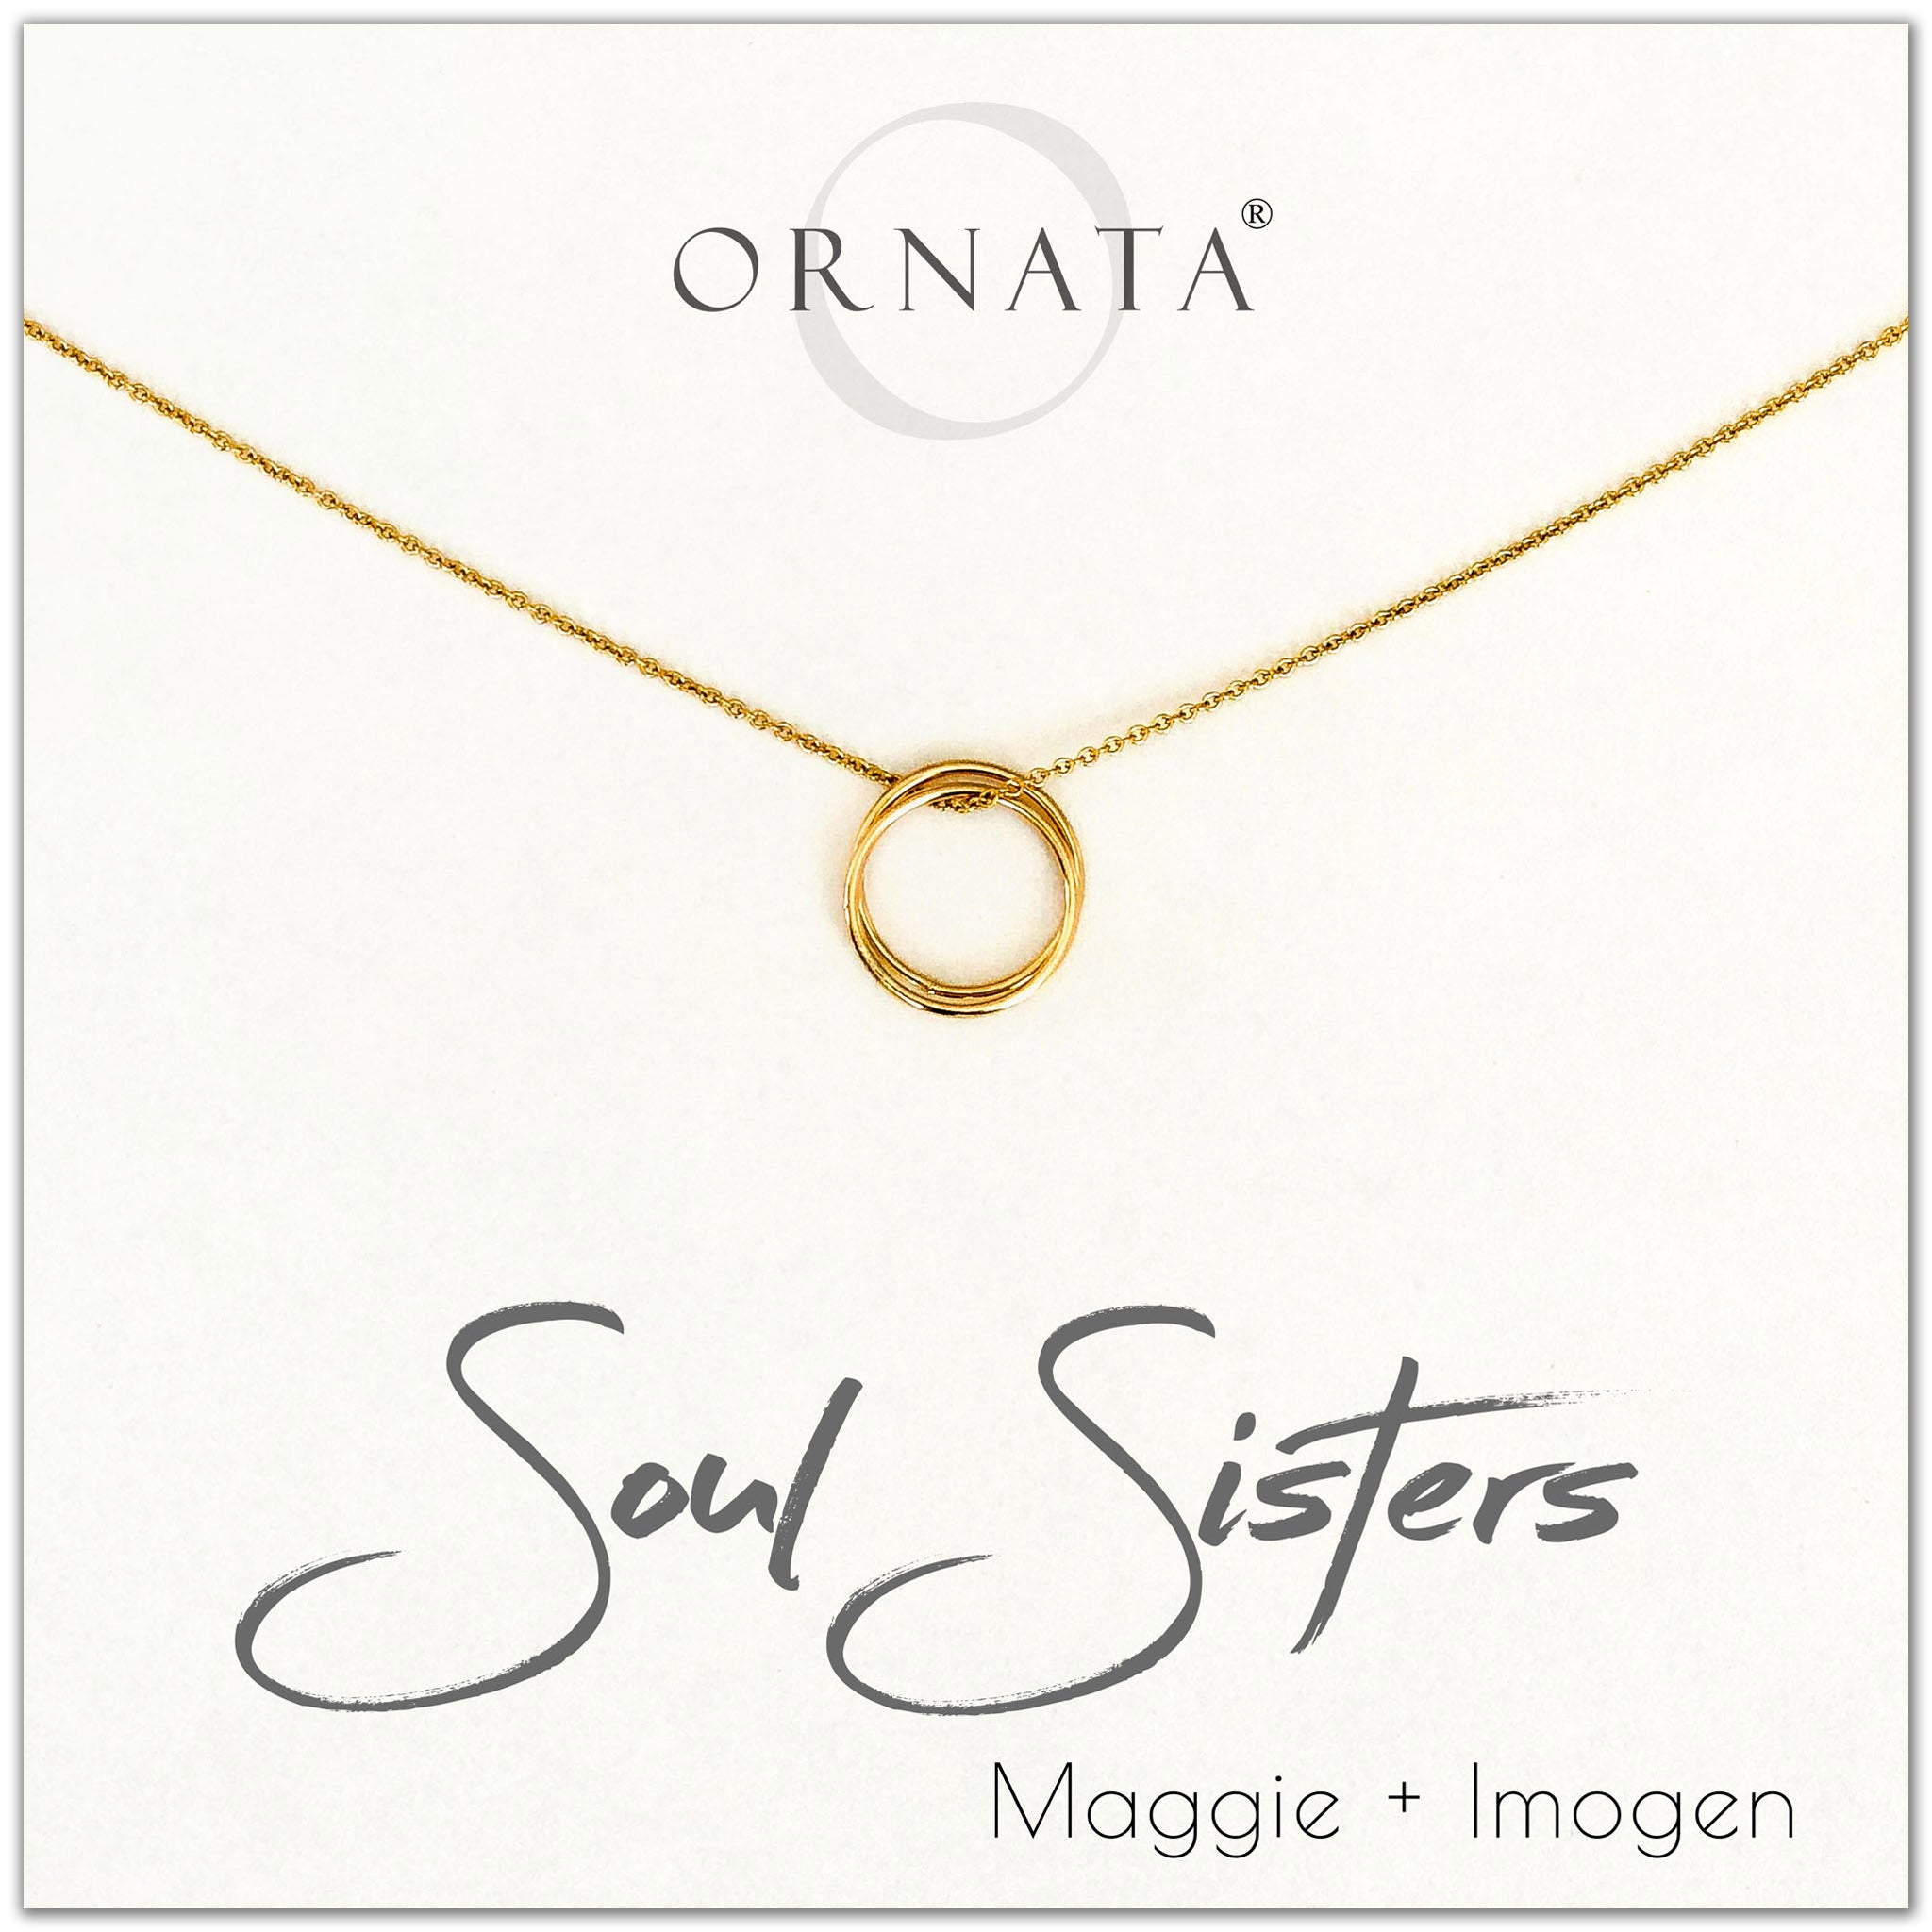 Soul Sisters - personalized gold necklaces. Our 14 karat gold filled custom jewelry is a perfect gift for best friends, sisters, and family.